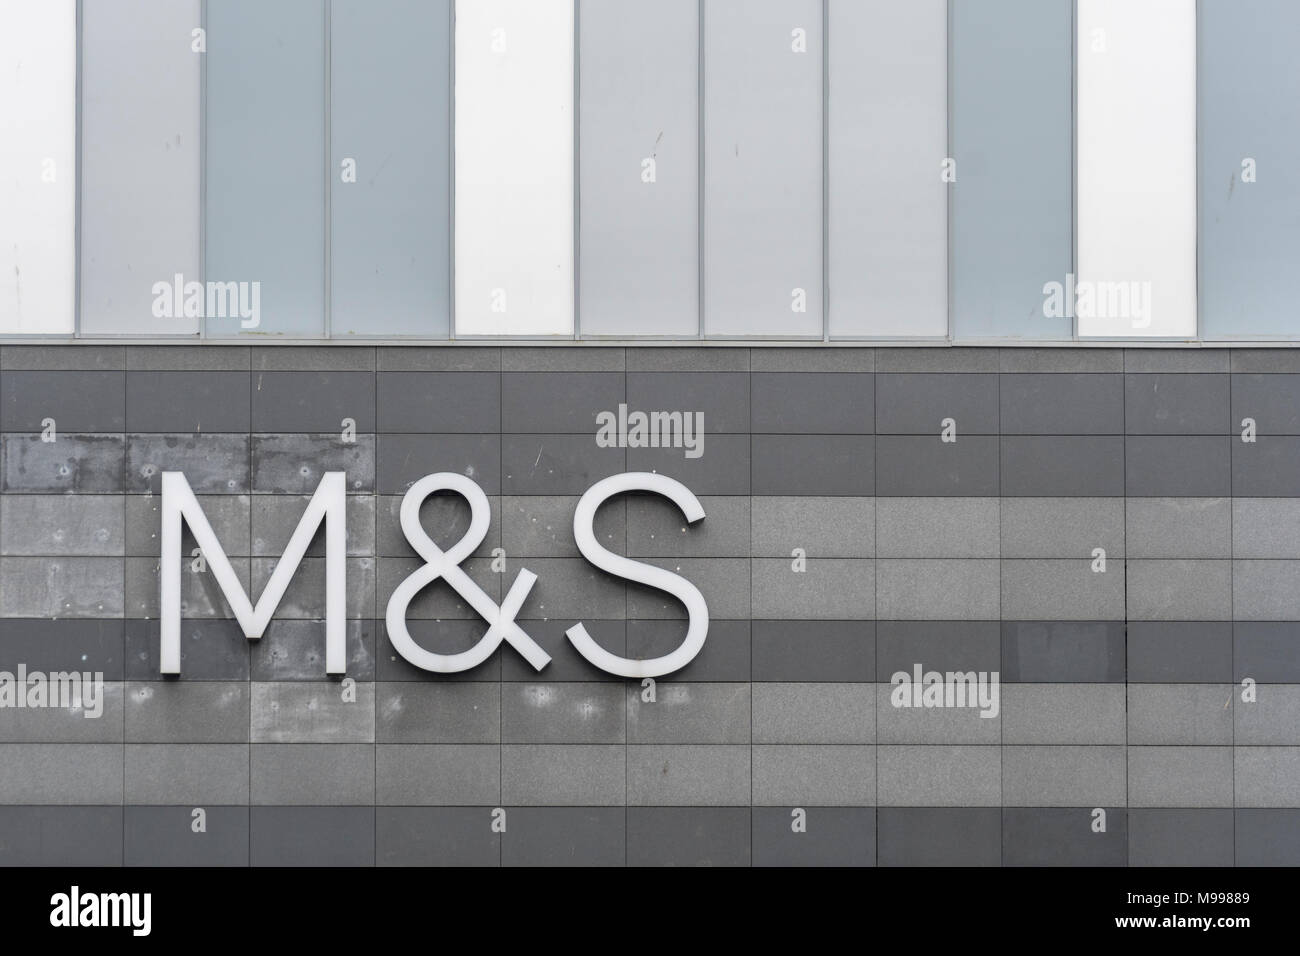 Marks and Spence / M&S logo at the Drake Centre (shopping mall) in lymouth, evon. - Stock Image